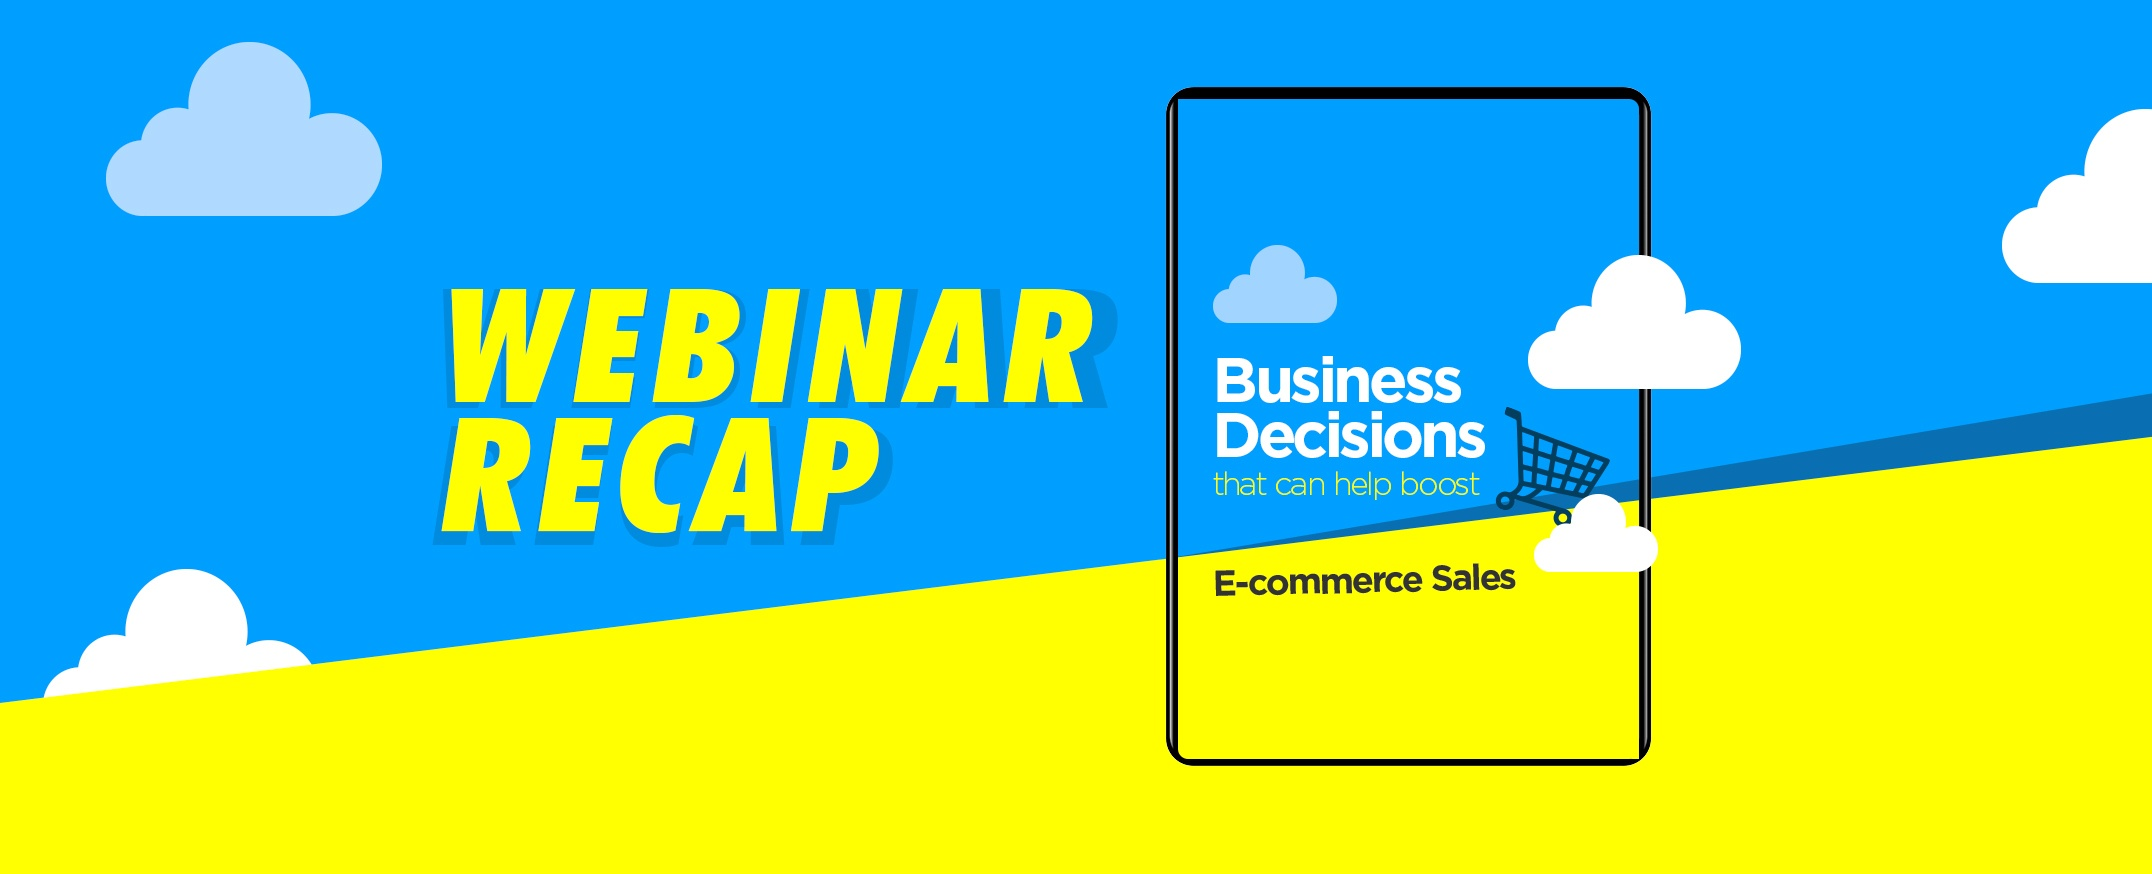 Webinar-Recap-Business-Decisions-that-can-Help-Boost-Ecommerce-Sales